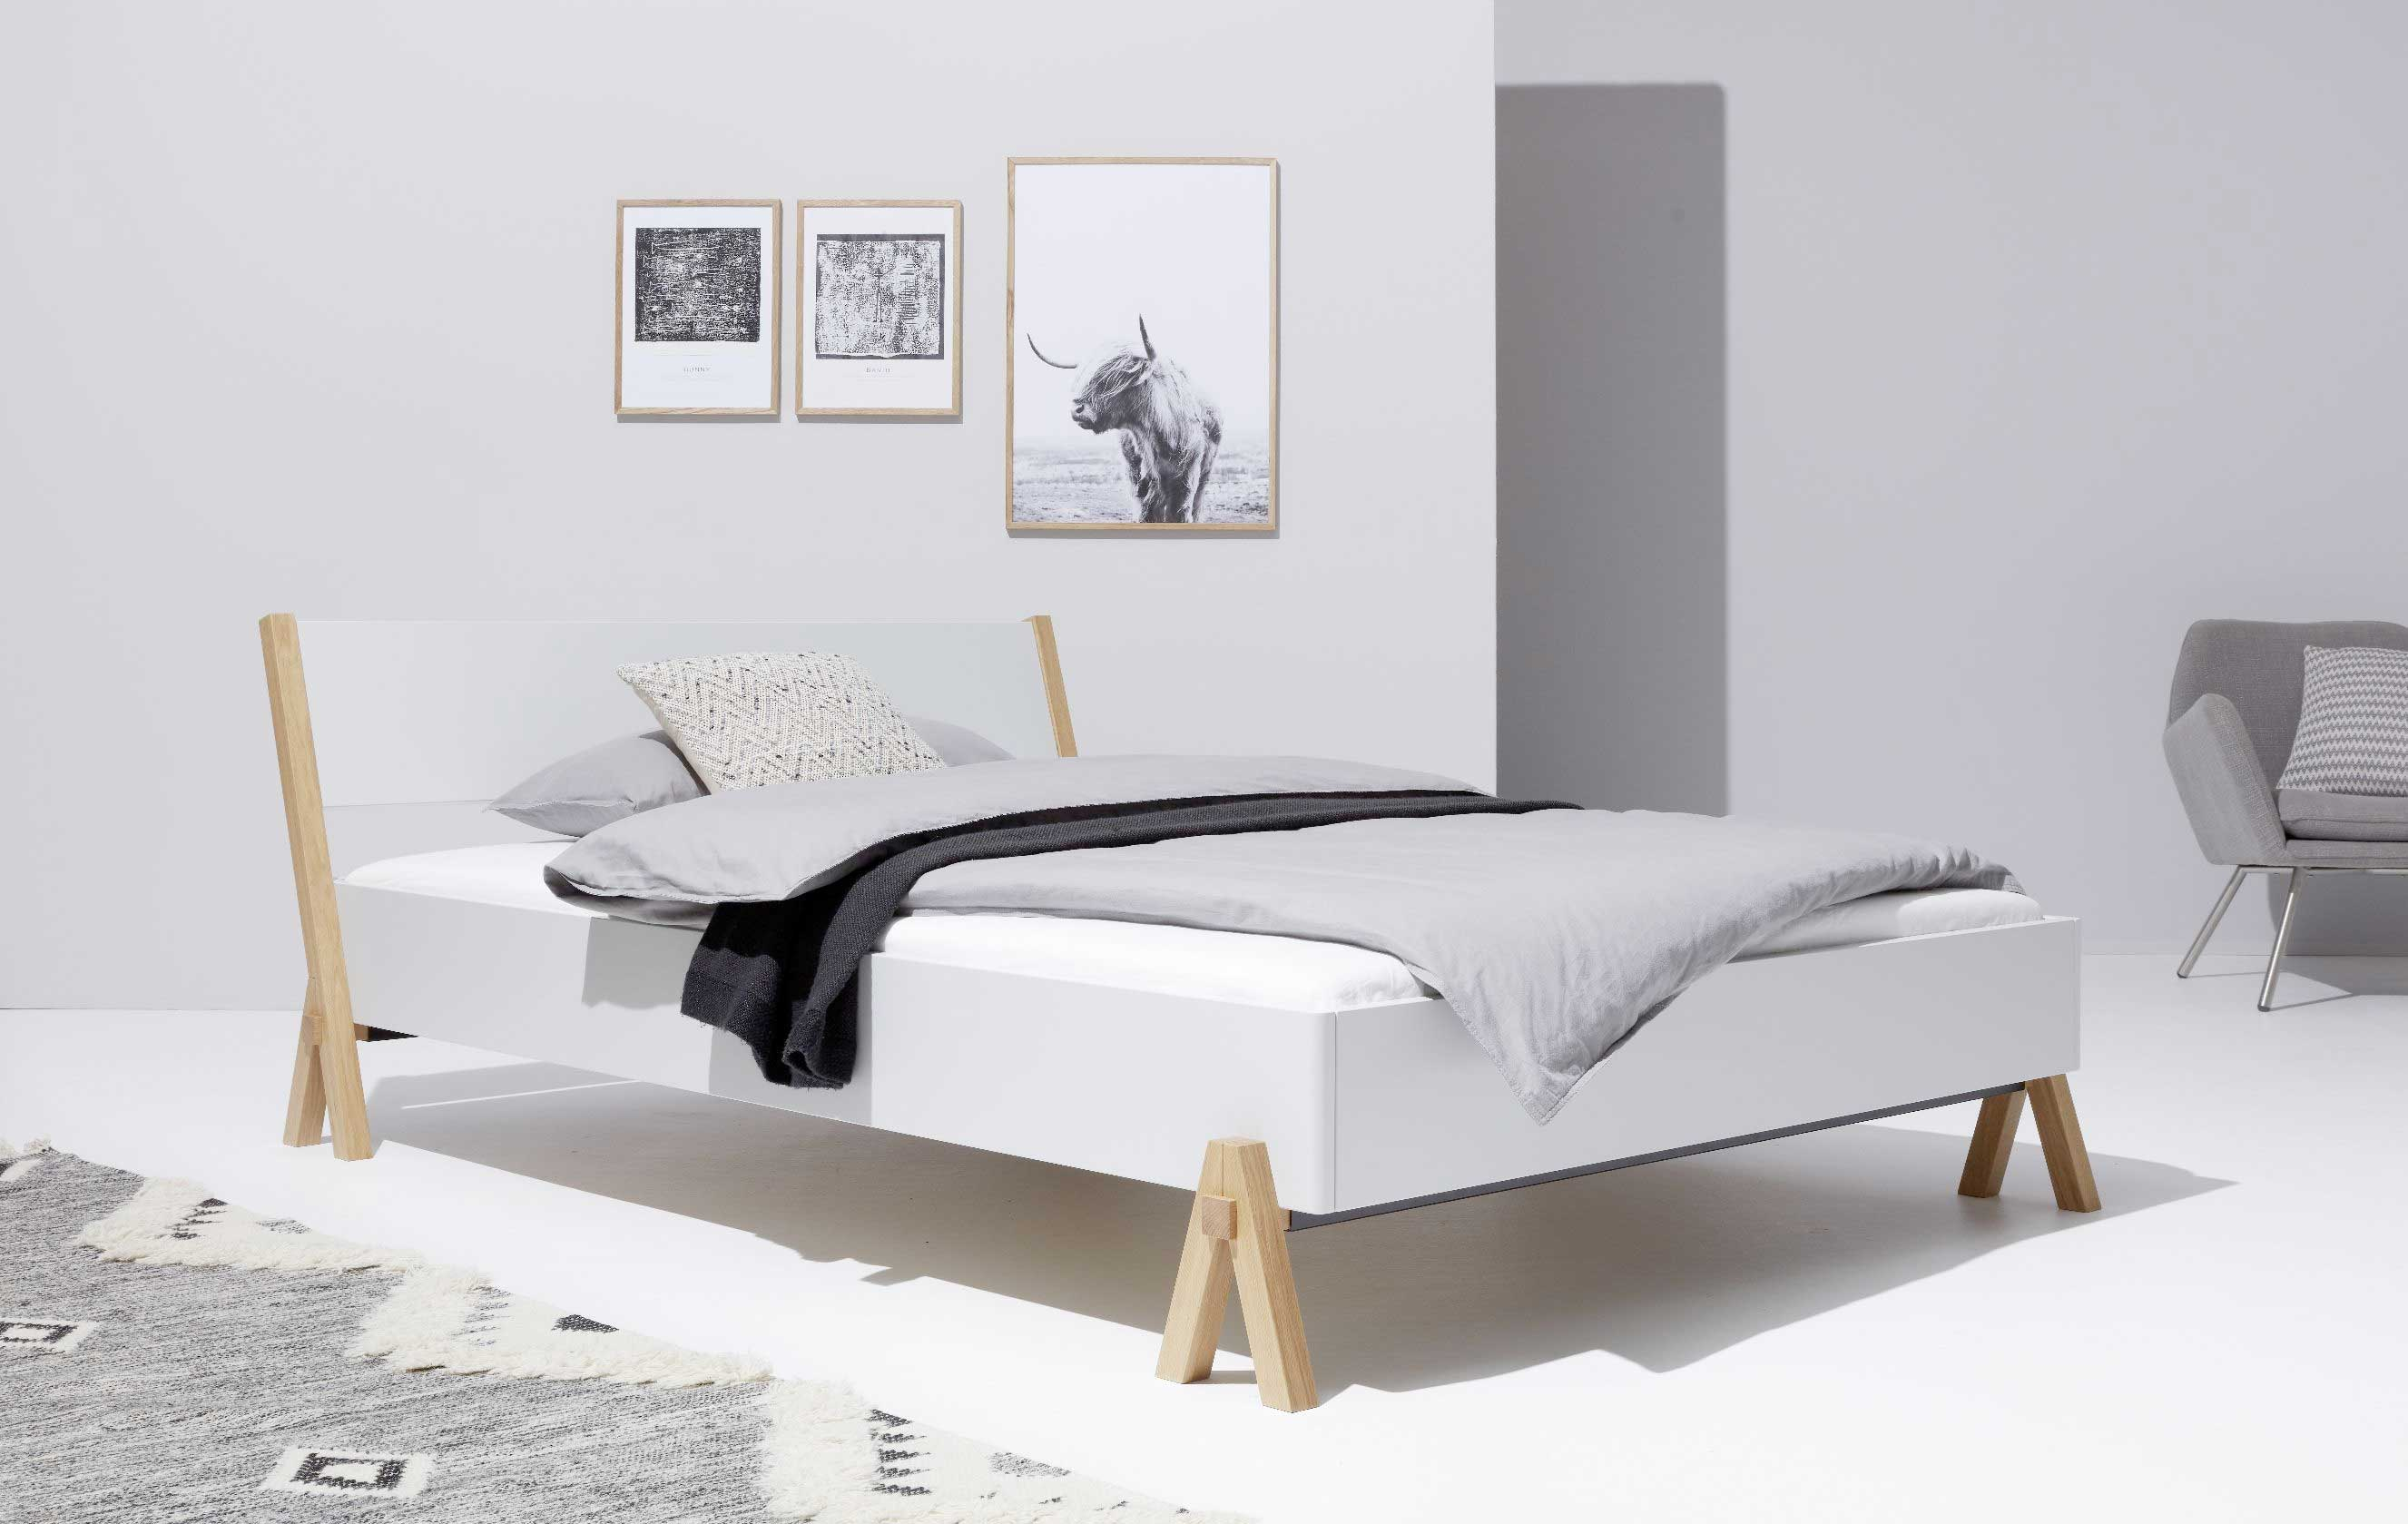 designwebstore boq bett weiss 140 x 200 cm mit lattenrost ohne matratze. Black Bedroom Furniture Sets. Home Design Ideas